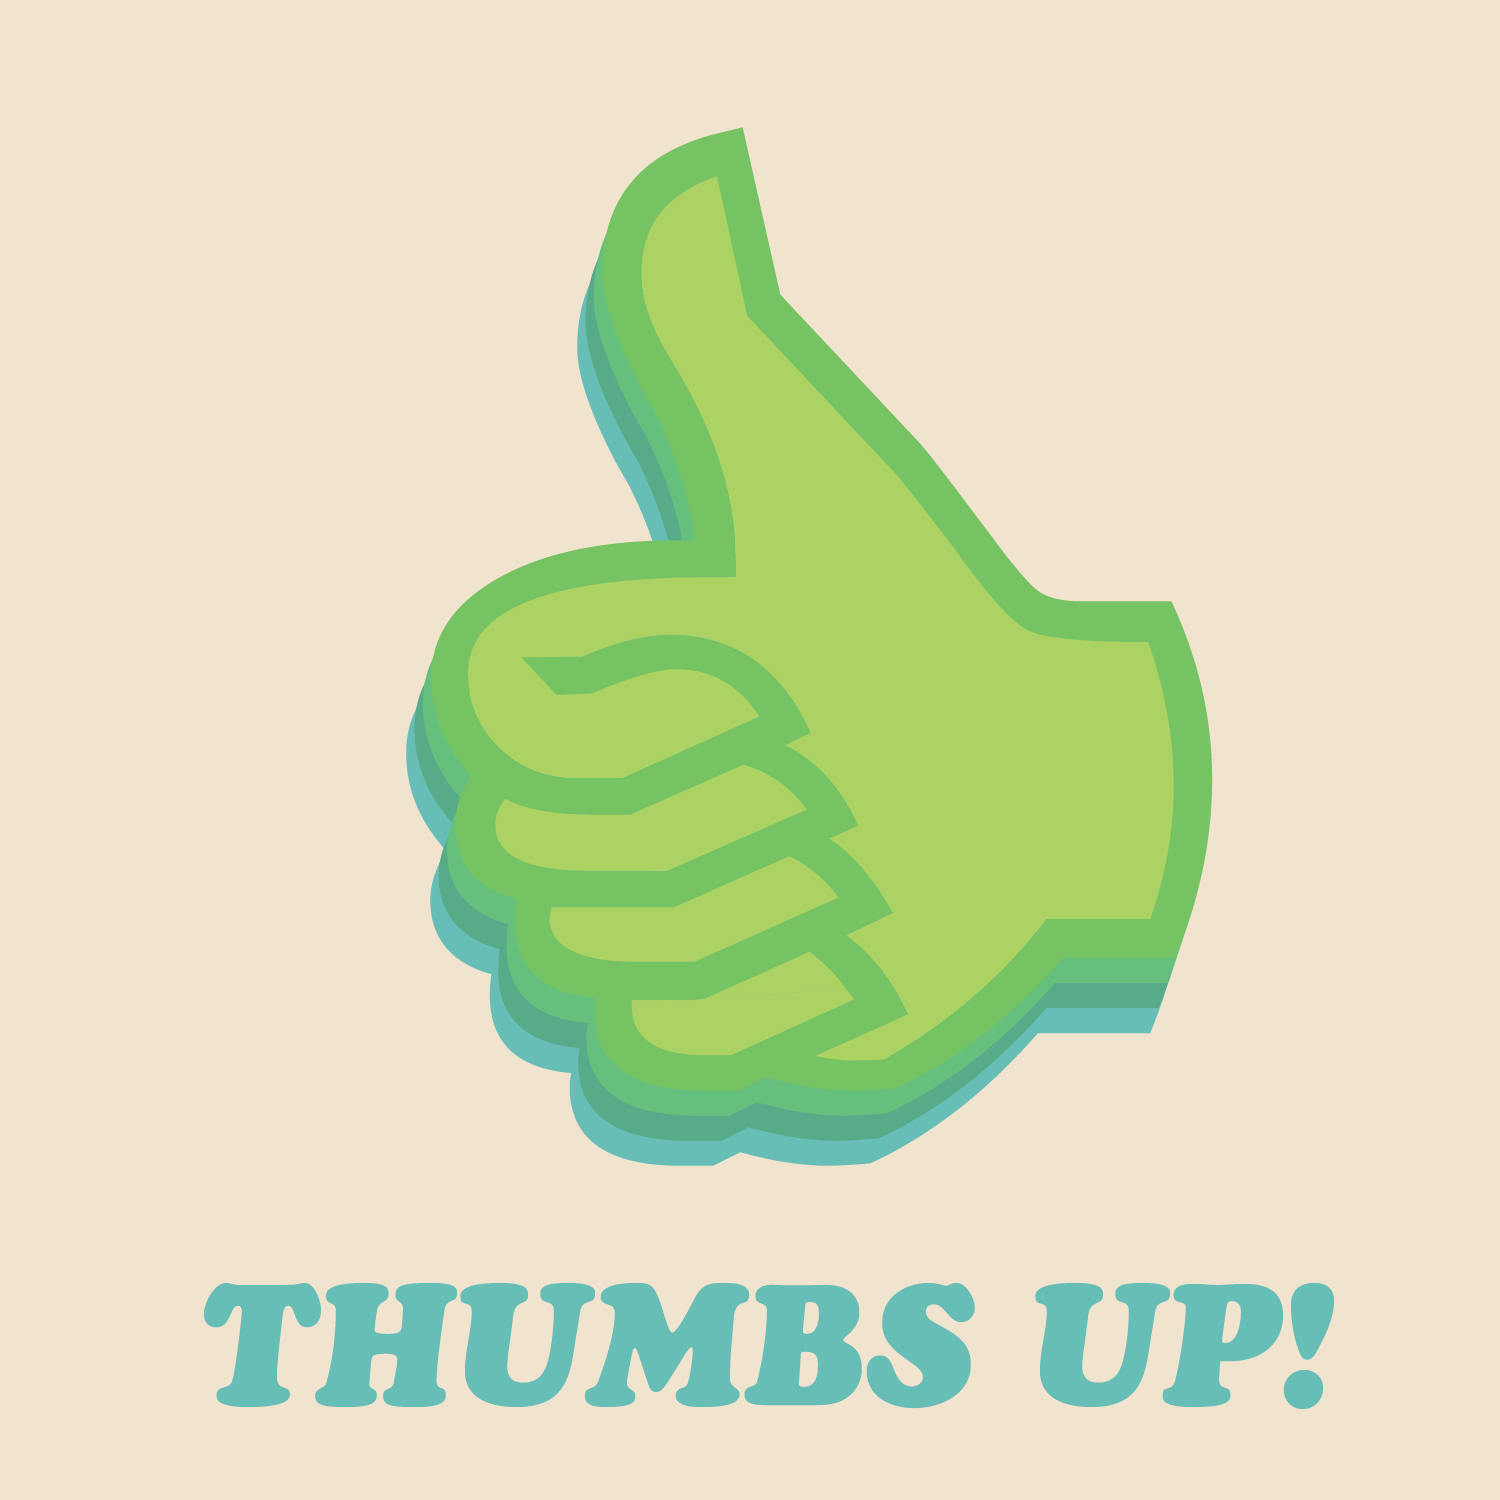 thumbs up-03.png